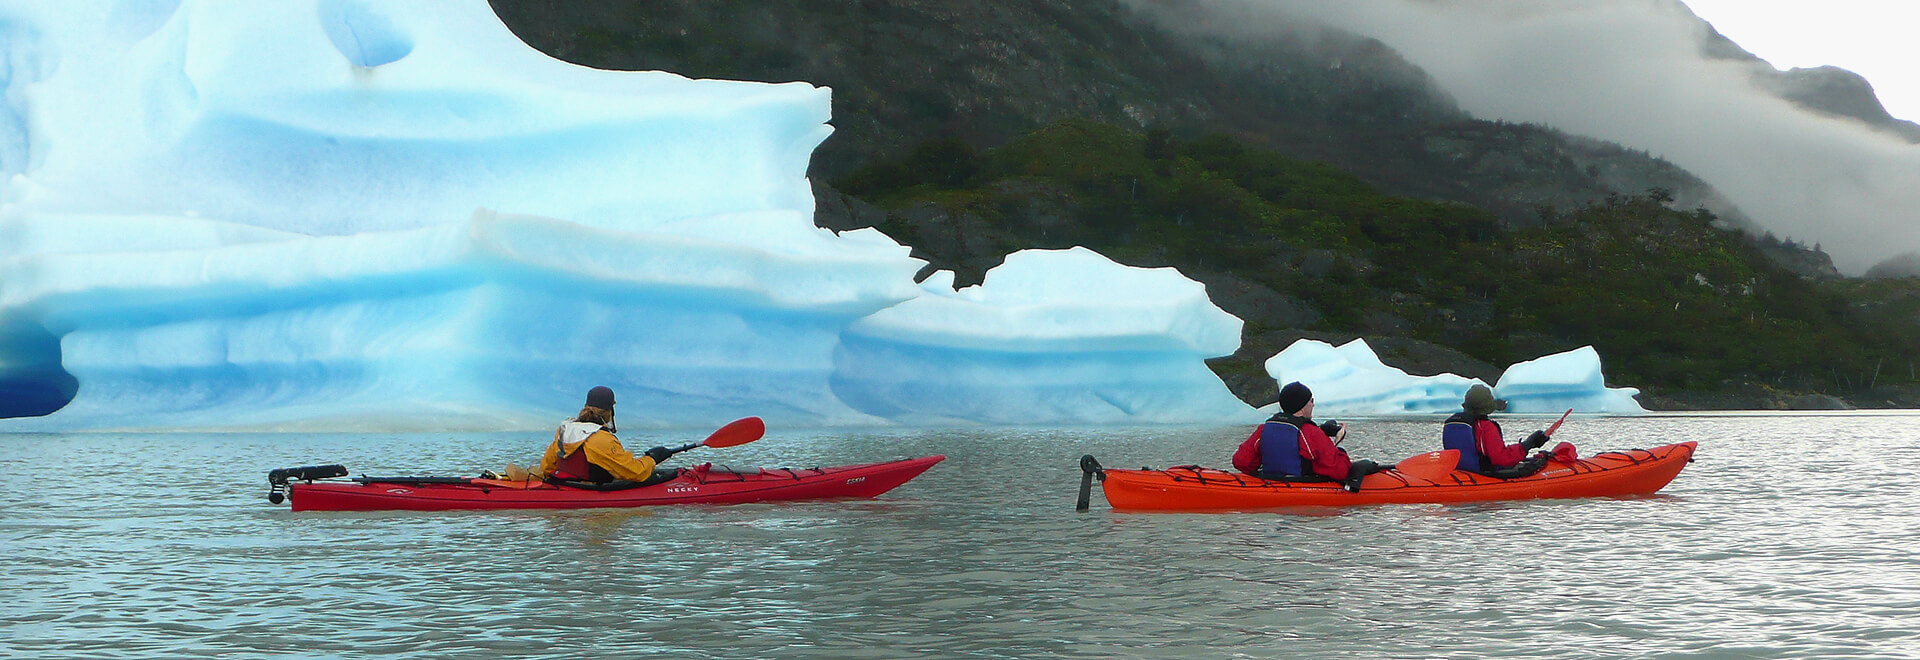 Kayaking in Torres del Paine National Park